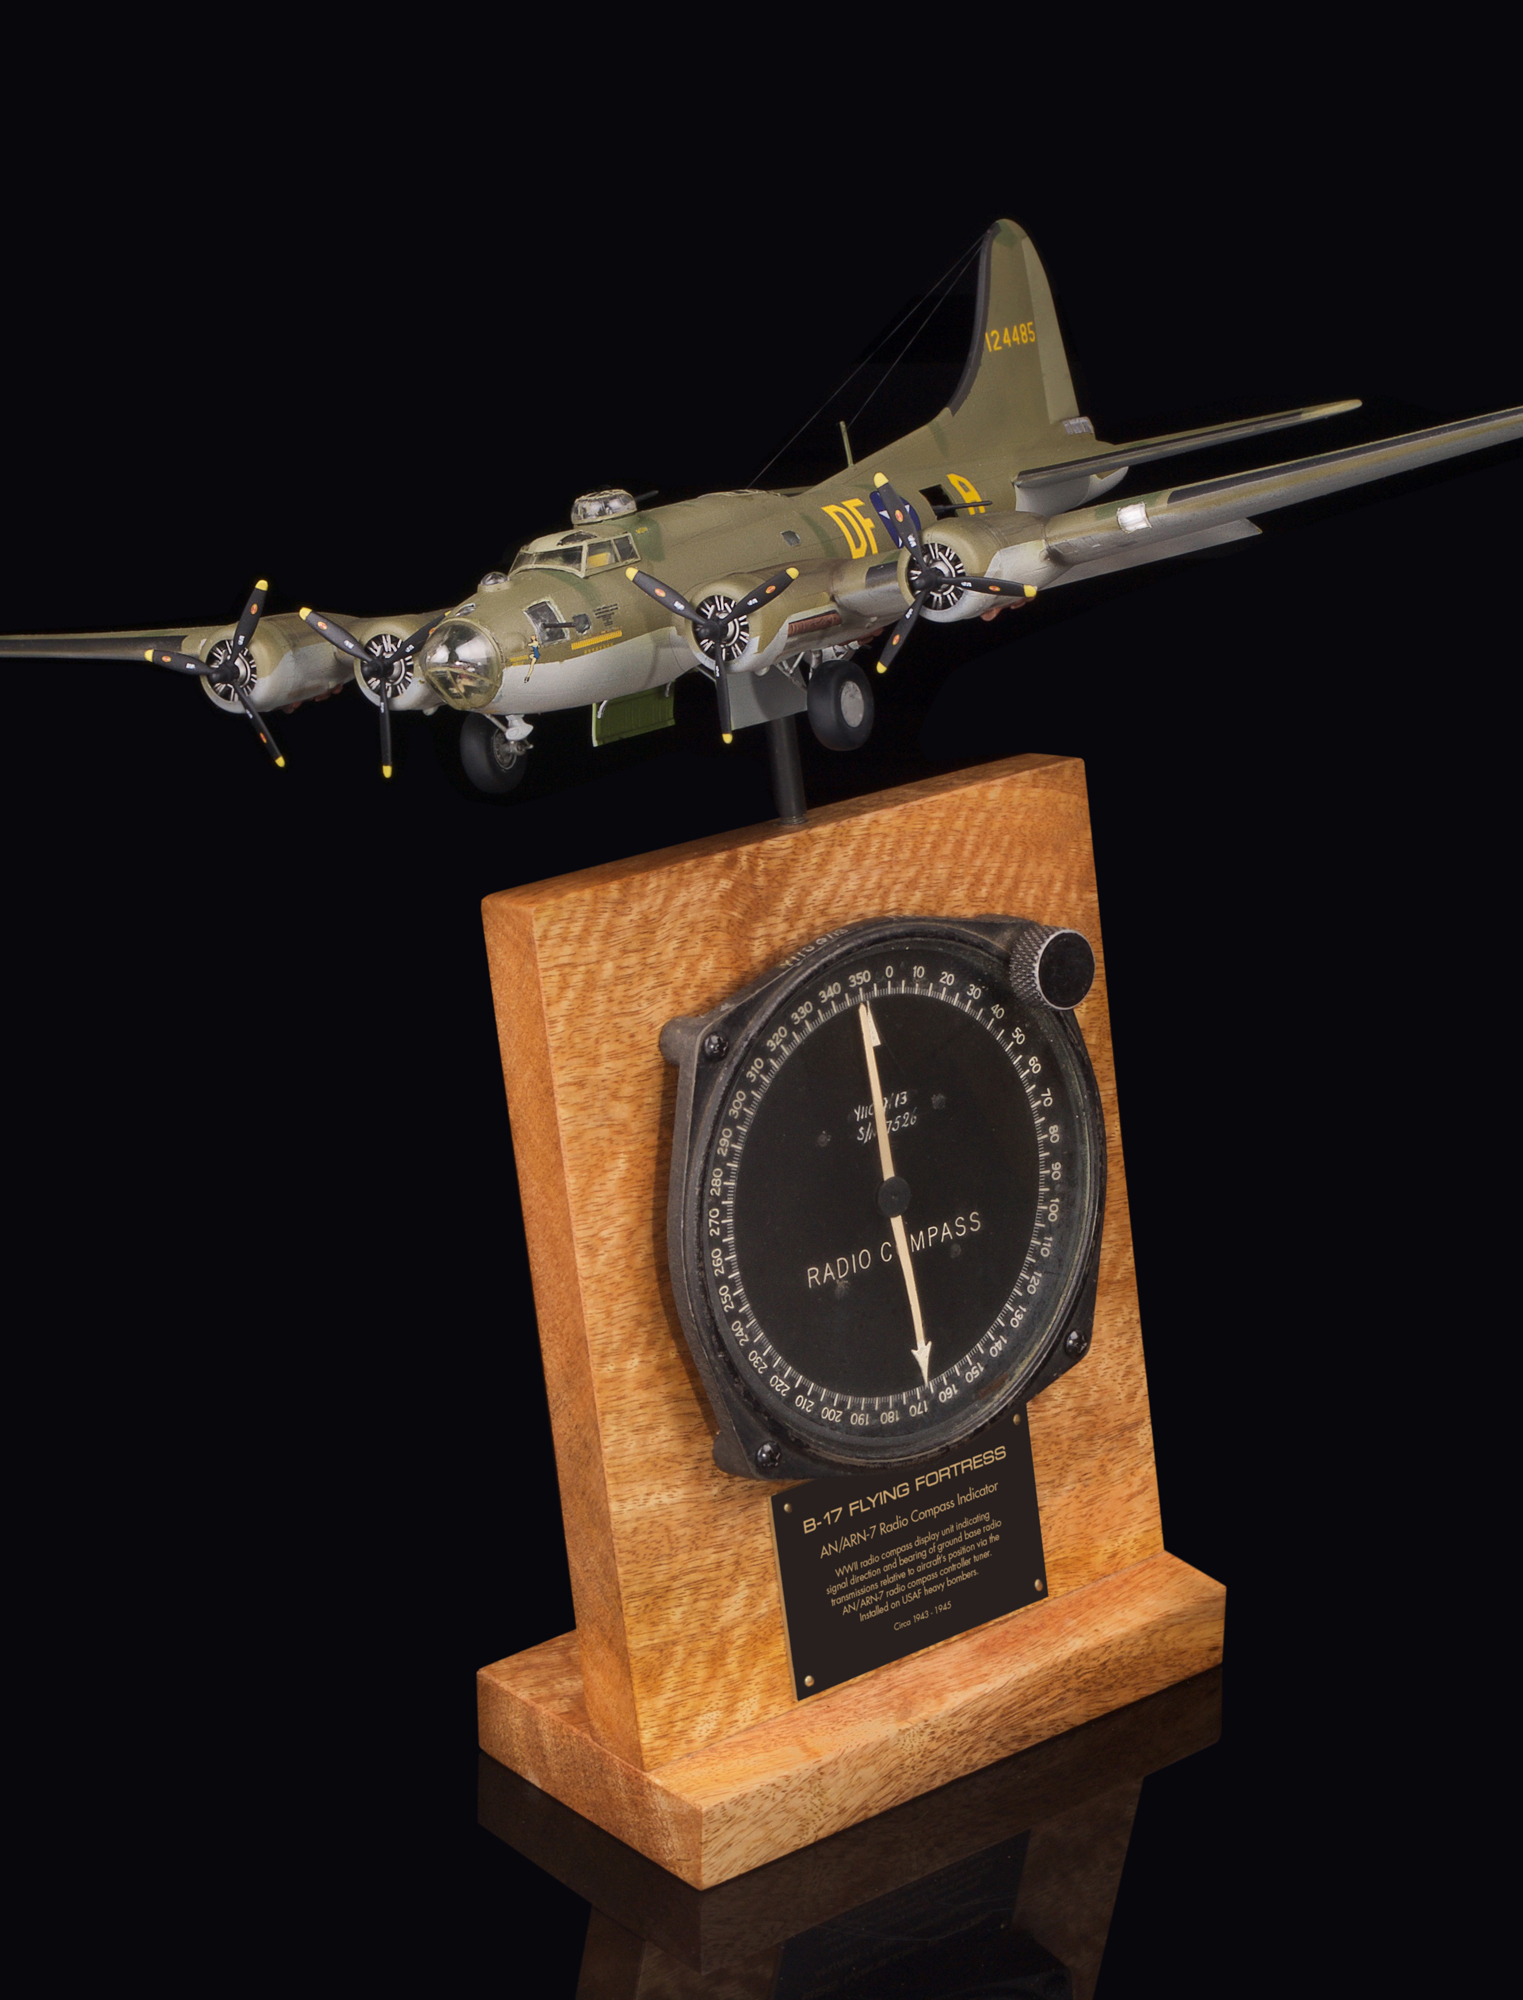 B-17 FLYING FORTRESS AN/ARN-7 RADIO COMPASS INDICATOR